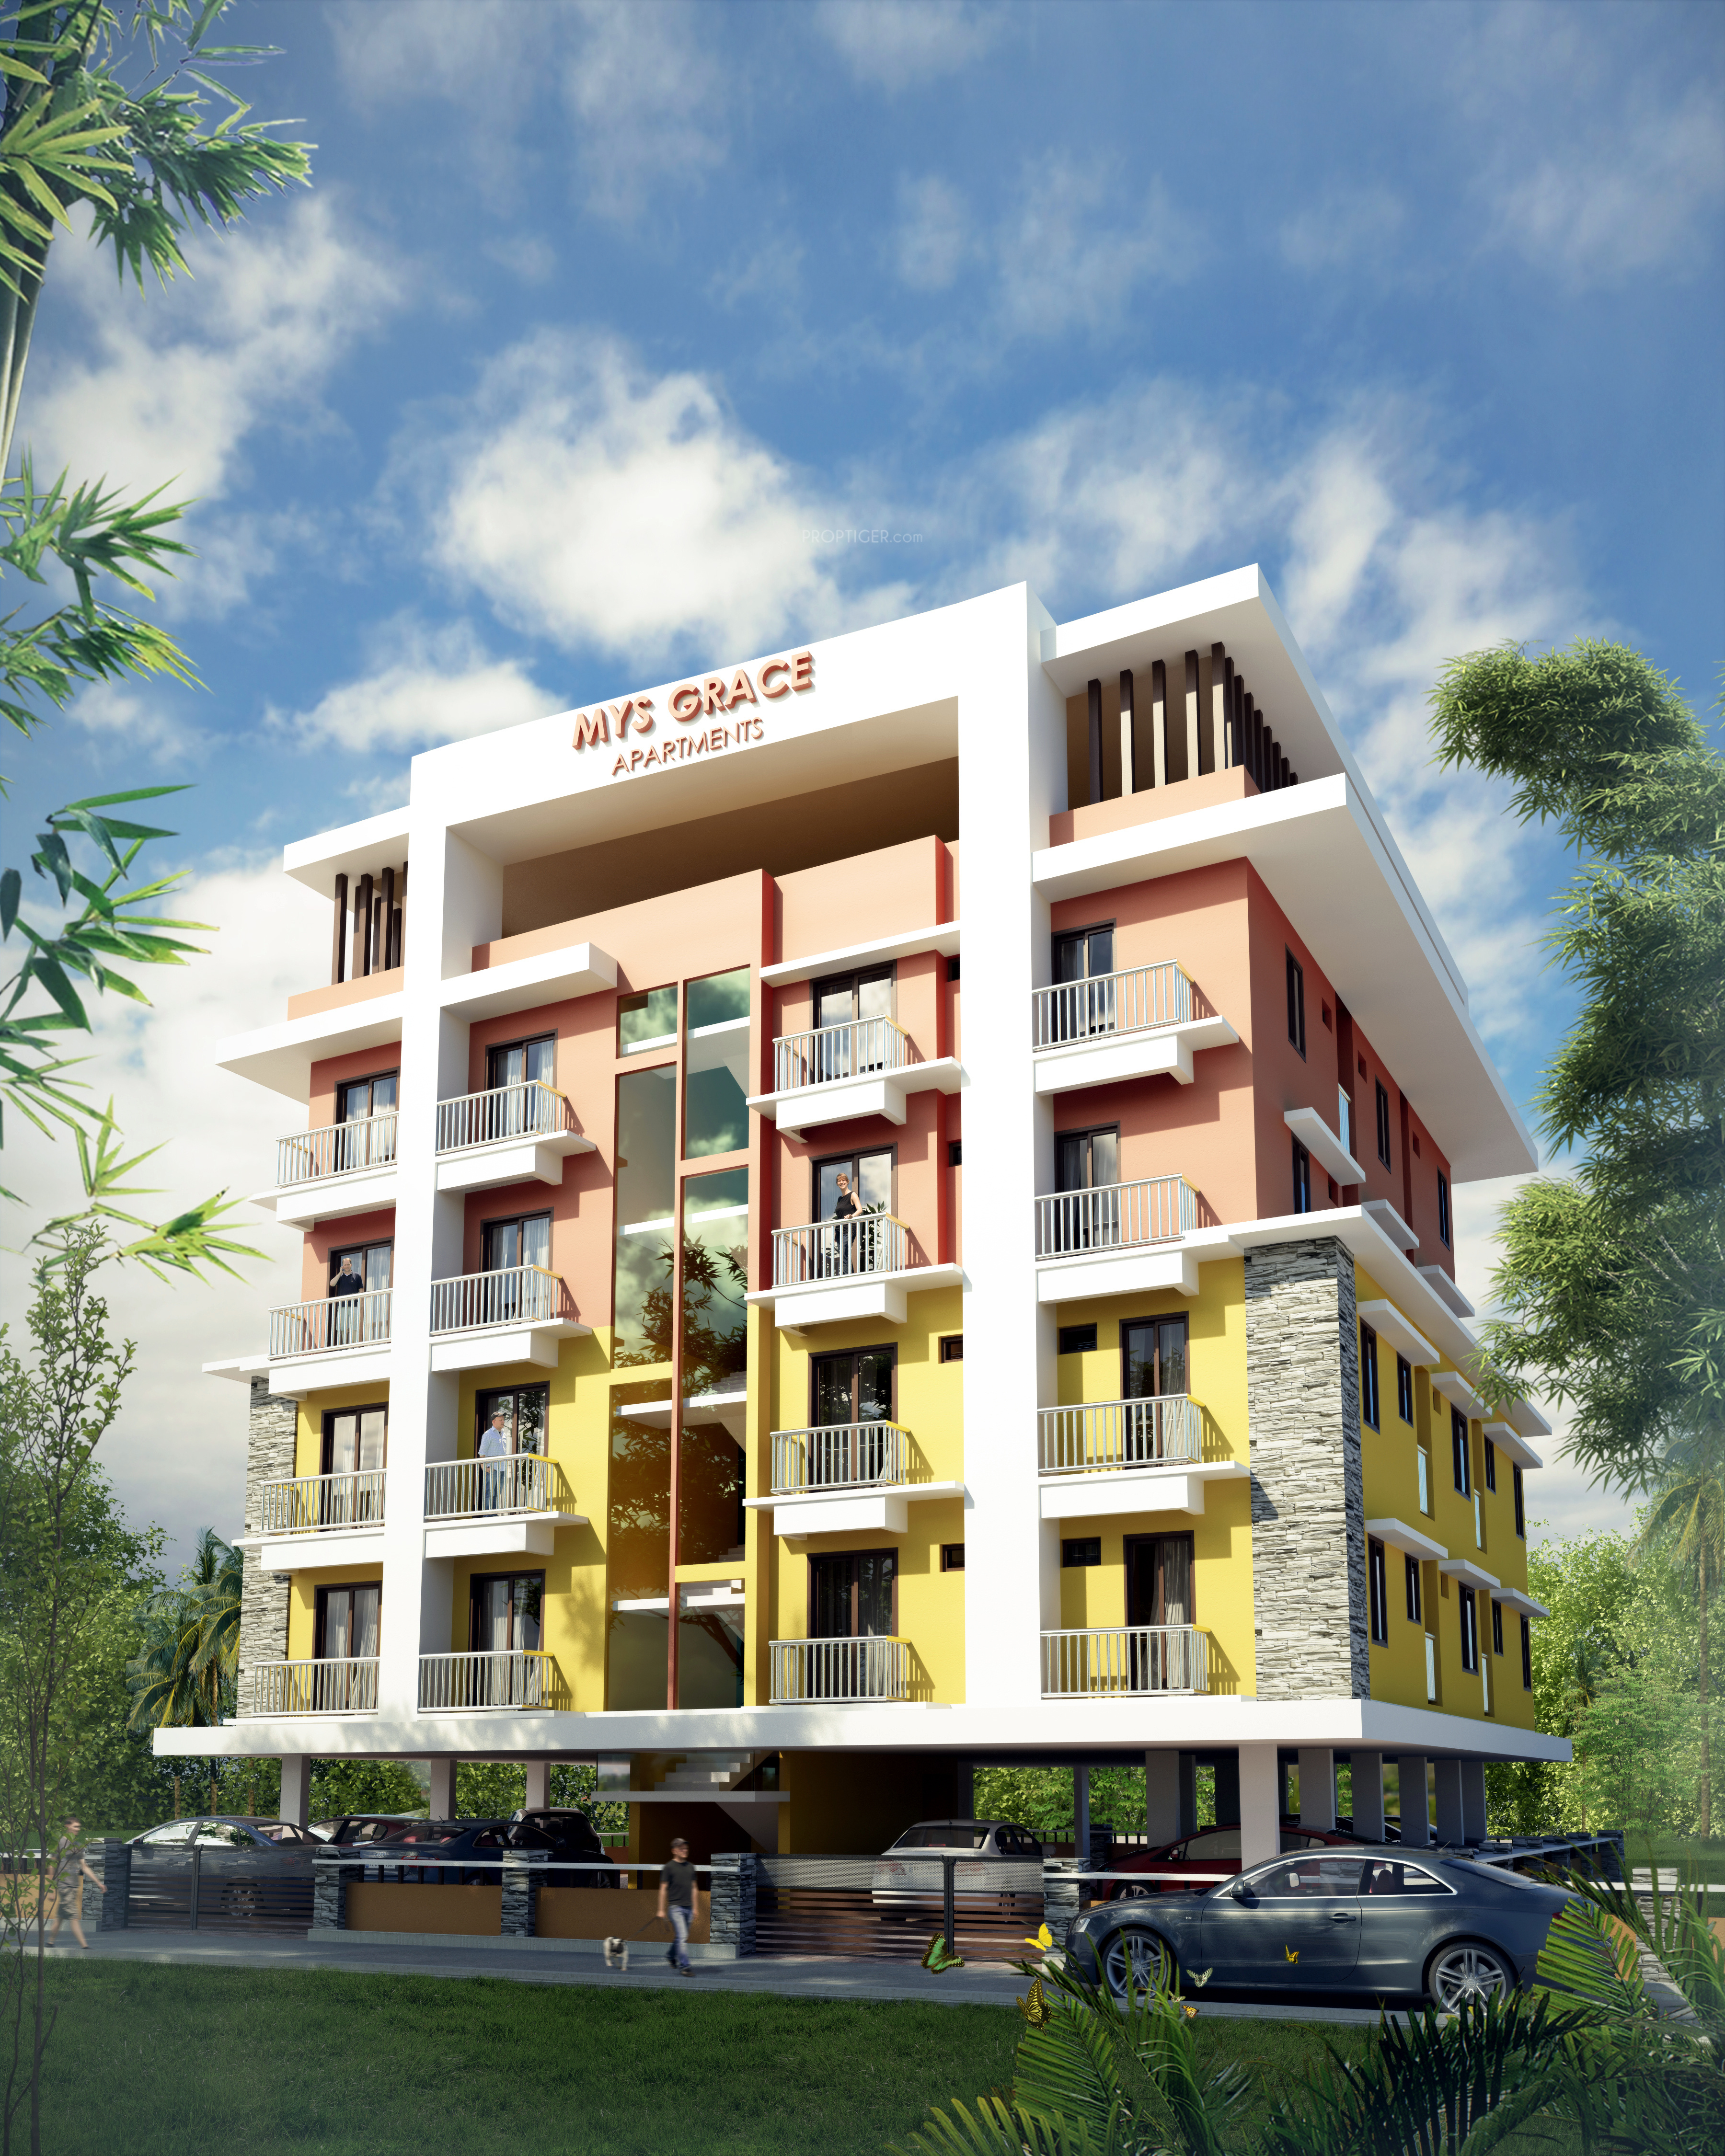 Apartments By Location: MYS Grace Apartments In Edappally, Kochi